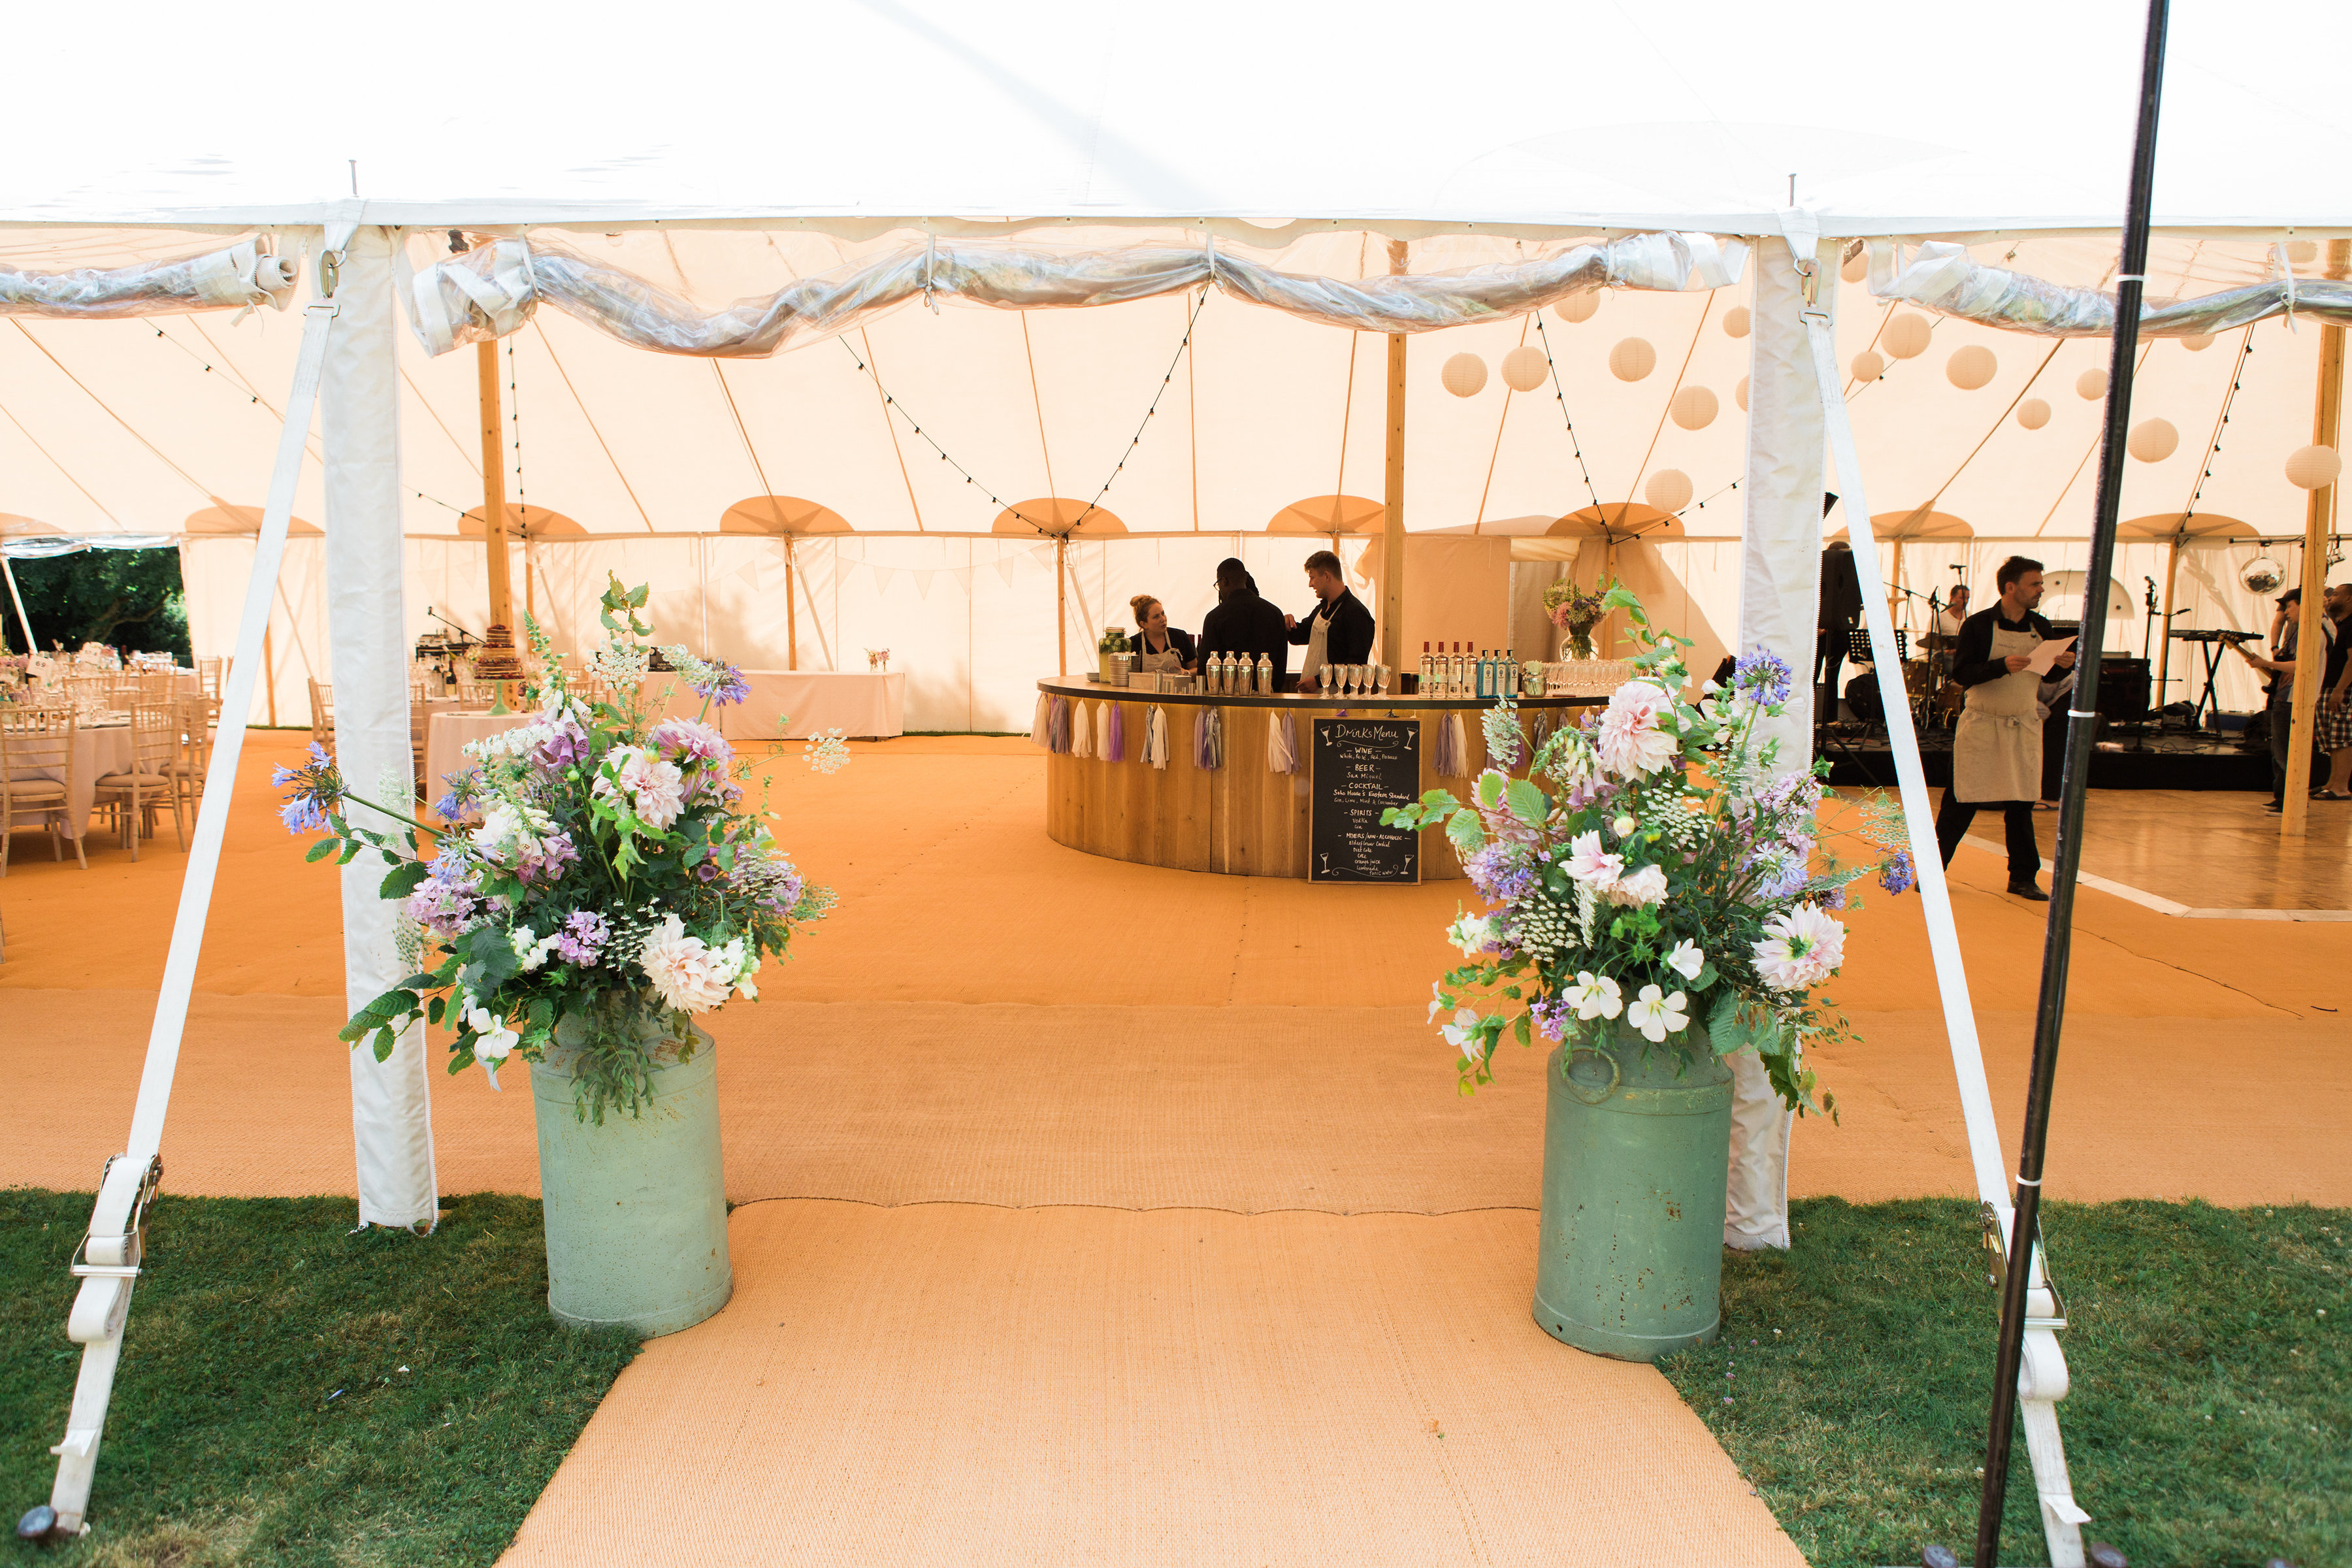 Georgie & Ben's PapaKåta Sperry Tent wedding at Newington House captured by Lucy Davenport: Flowers by Green & Gorgeous Flowers